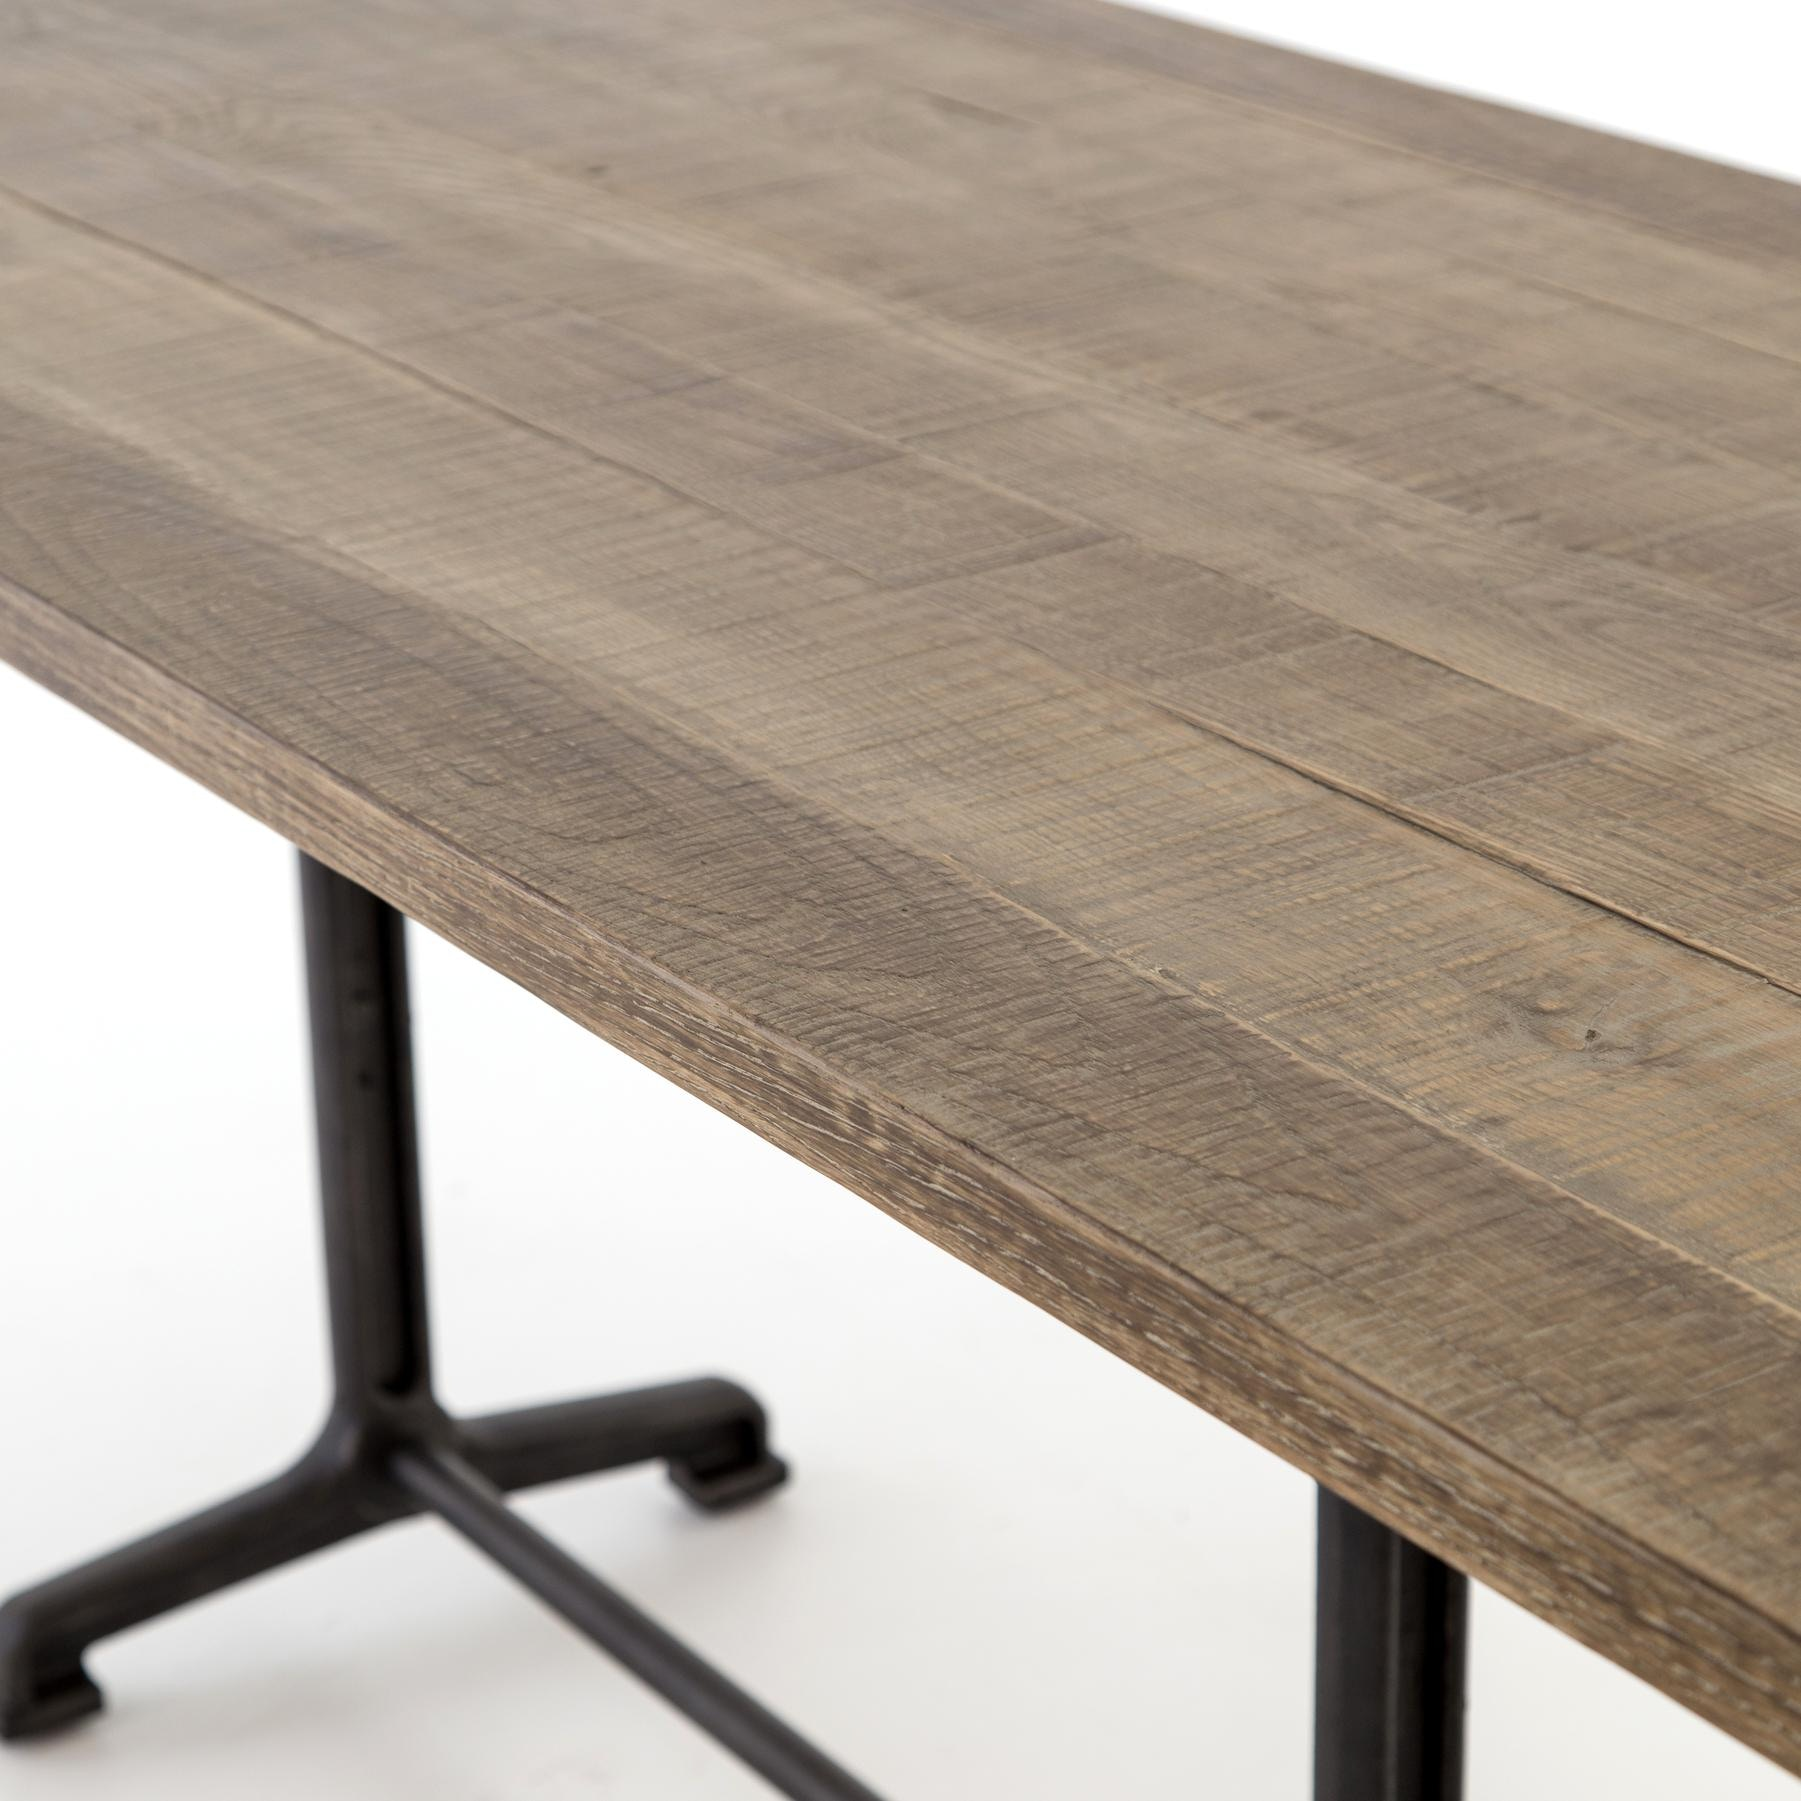 Four Hands Foster Dining Table CIMP 132 In Portland, Oregon